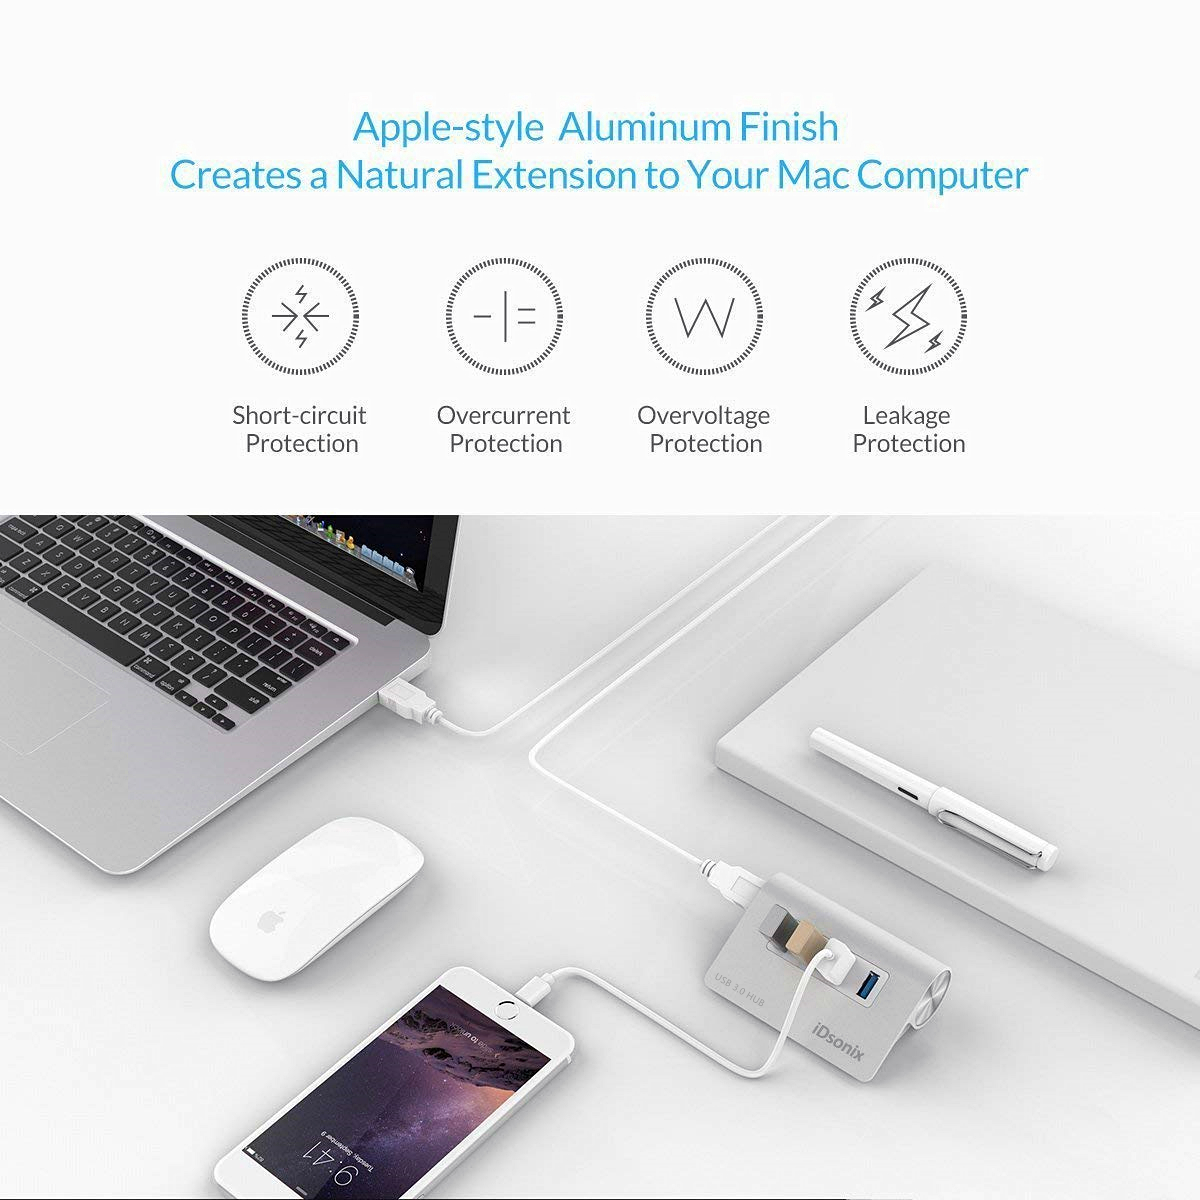 iDsonix 4 Port USB 3.0 Hub Aluminum Desk USB Hub Data Transfer Hubs for Windows, MacBook, Mac Pro/Mini, iMac, XPS, All USB Drives -Silver